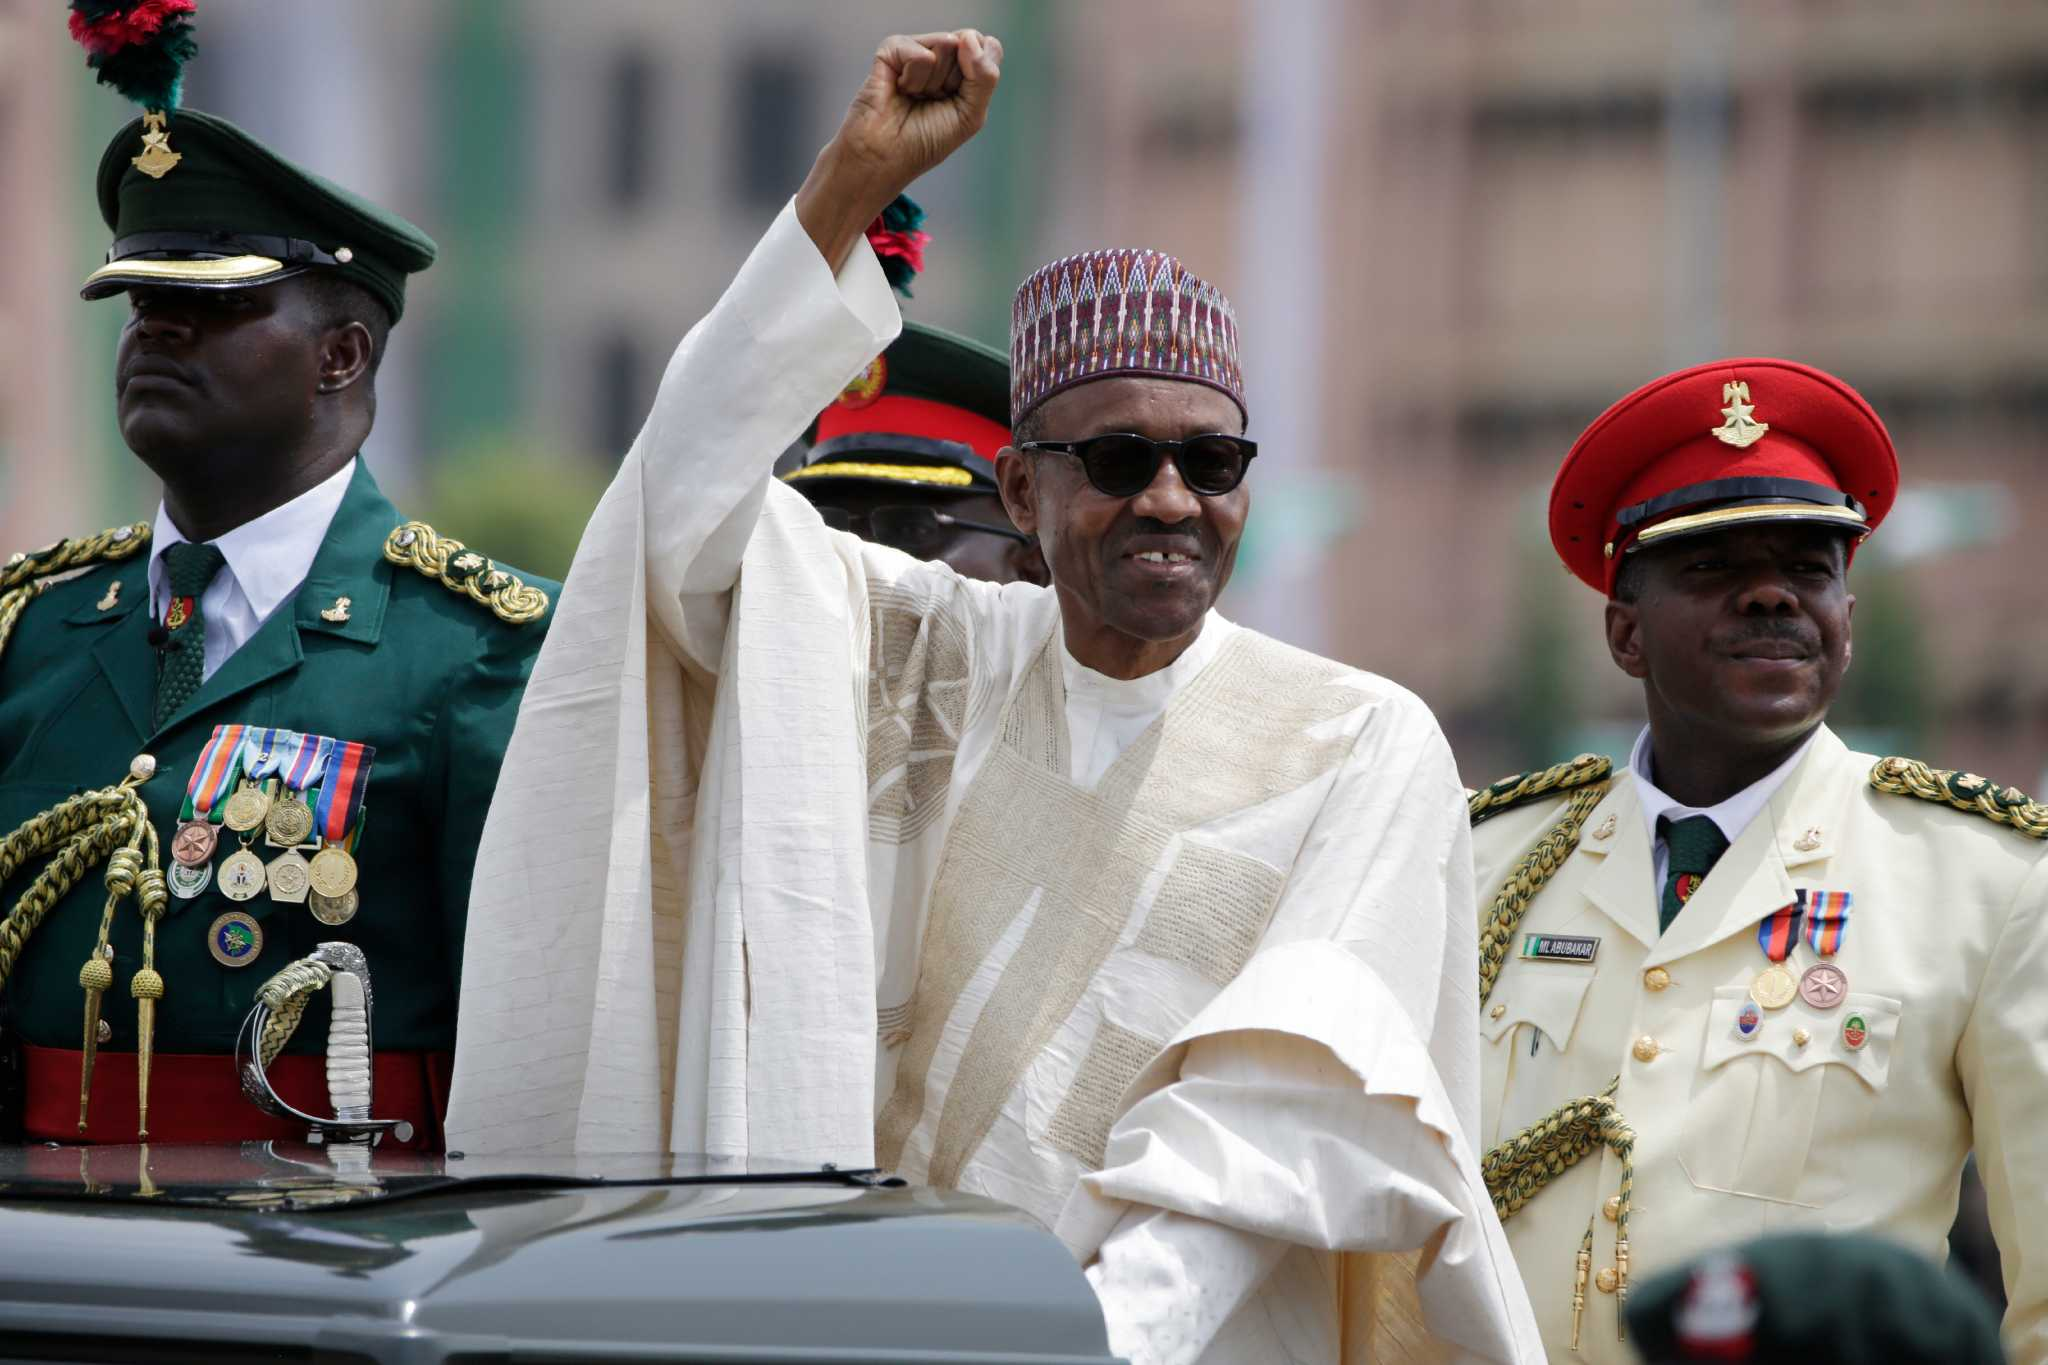 President Muhammadu Buhari, salutes his supporters during his Inauguration in Abuja, Nigeria, Friday, May 29, 2015. | AP/Sunday Alamba